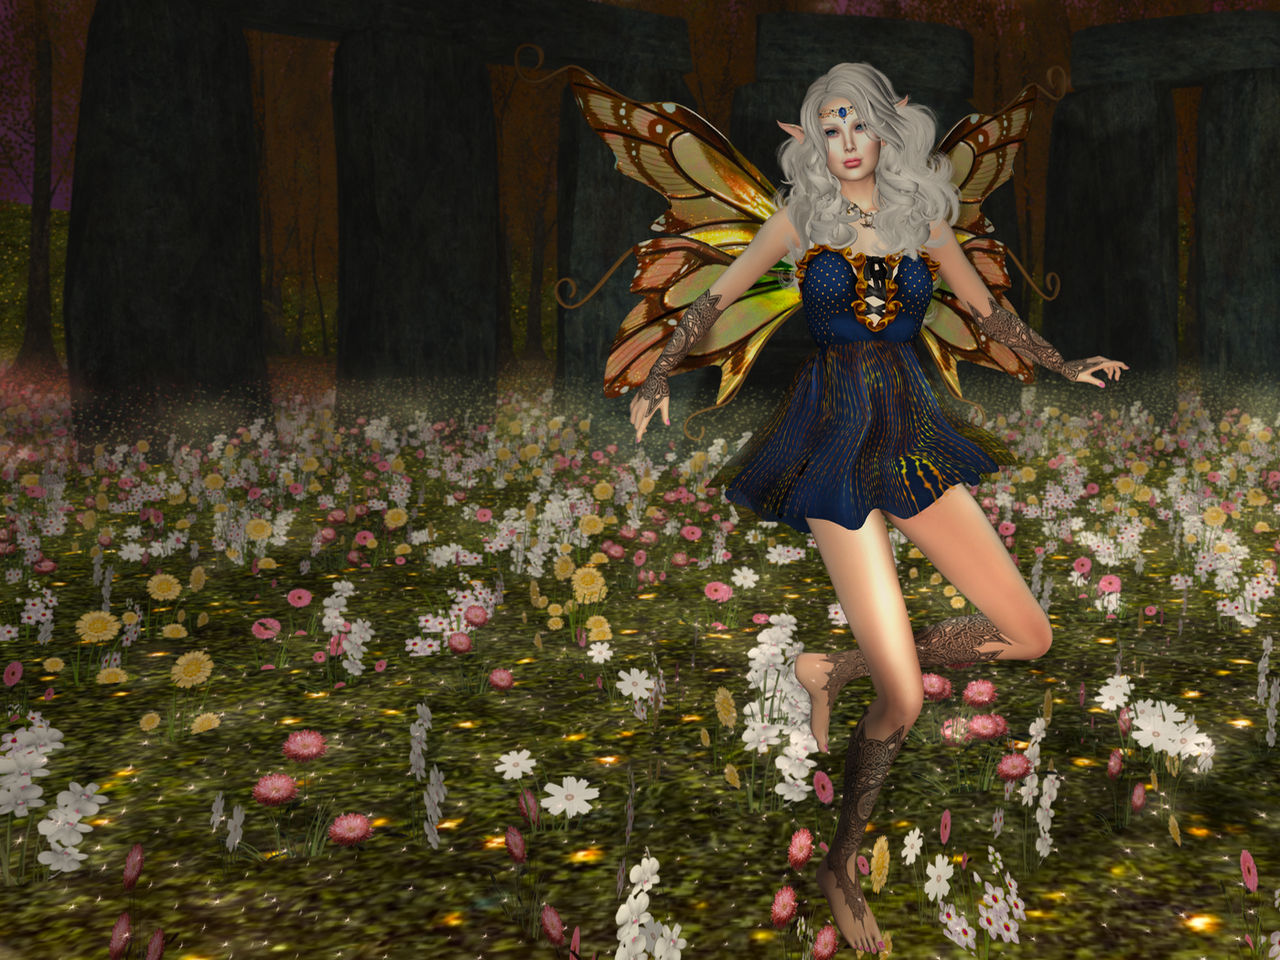 Ah, Gwyneth, such a faerie fae in this dress from Moon Amore!